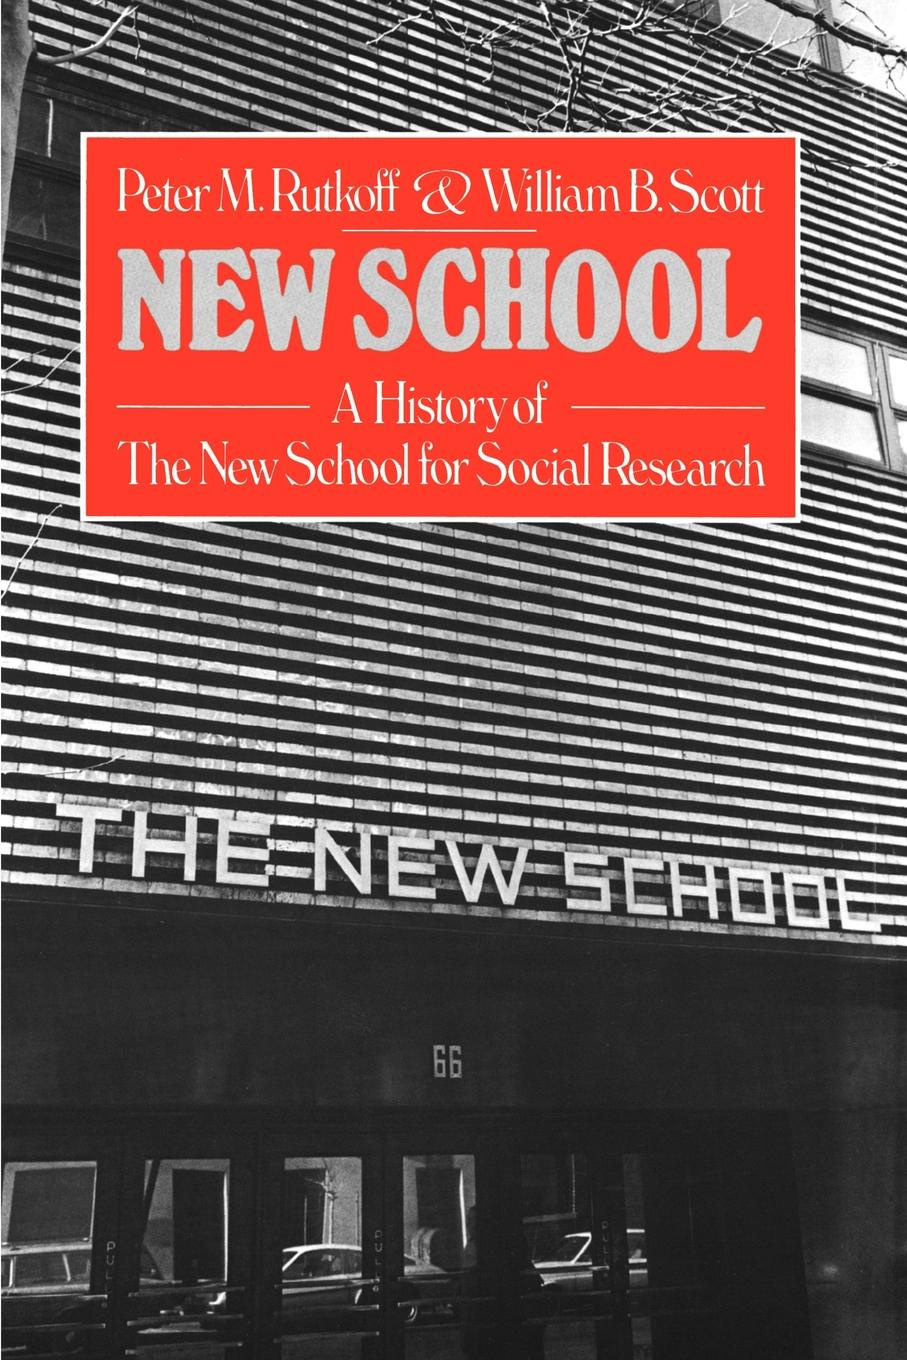 Peter M. Rutkoff, William B. Scott New School. A History of the School for Social Research